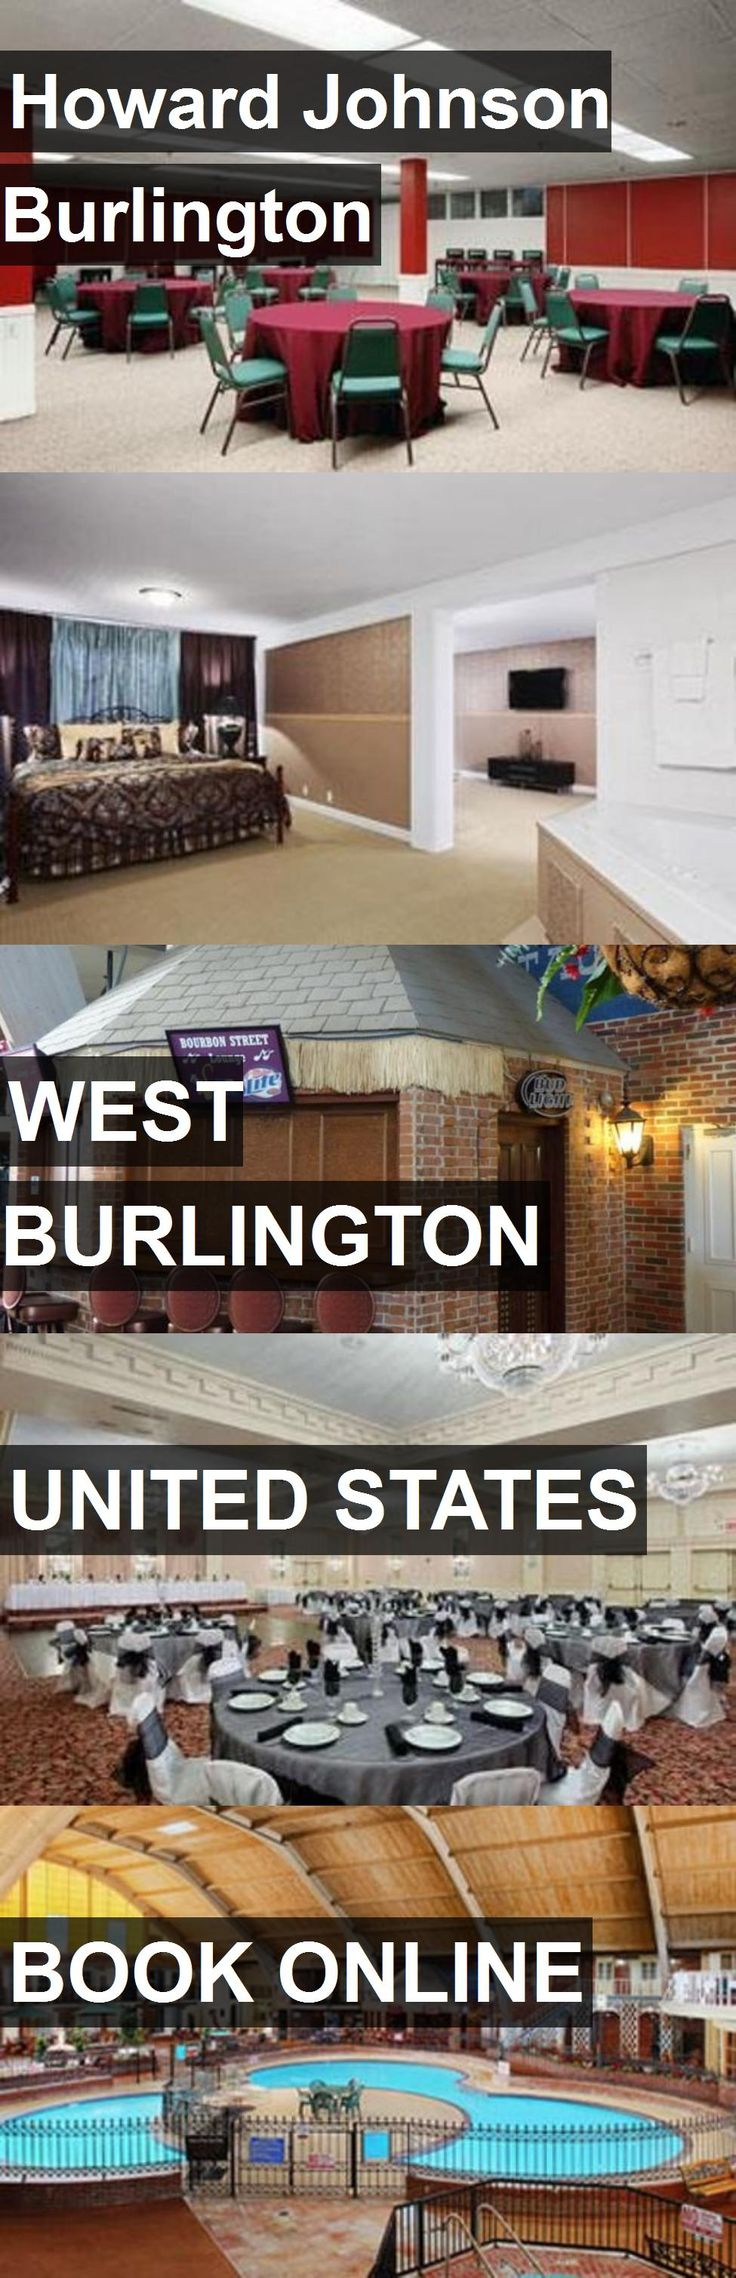 Hotel Howard Johnson Burlington in West Burlington, United States. For more information, photos, reviews and best prices please follow the link. #UnitedStates #WestBurlington #travel #vacation #hotel